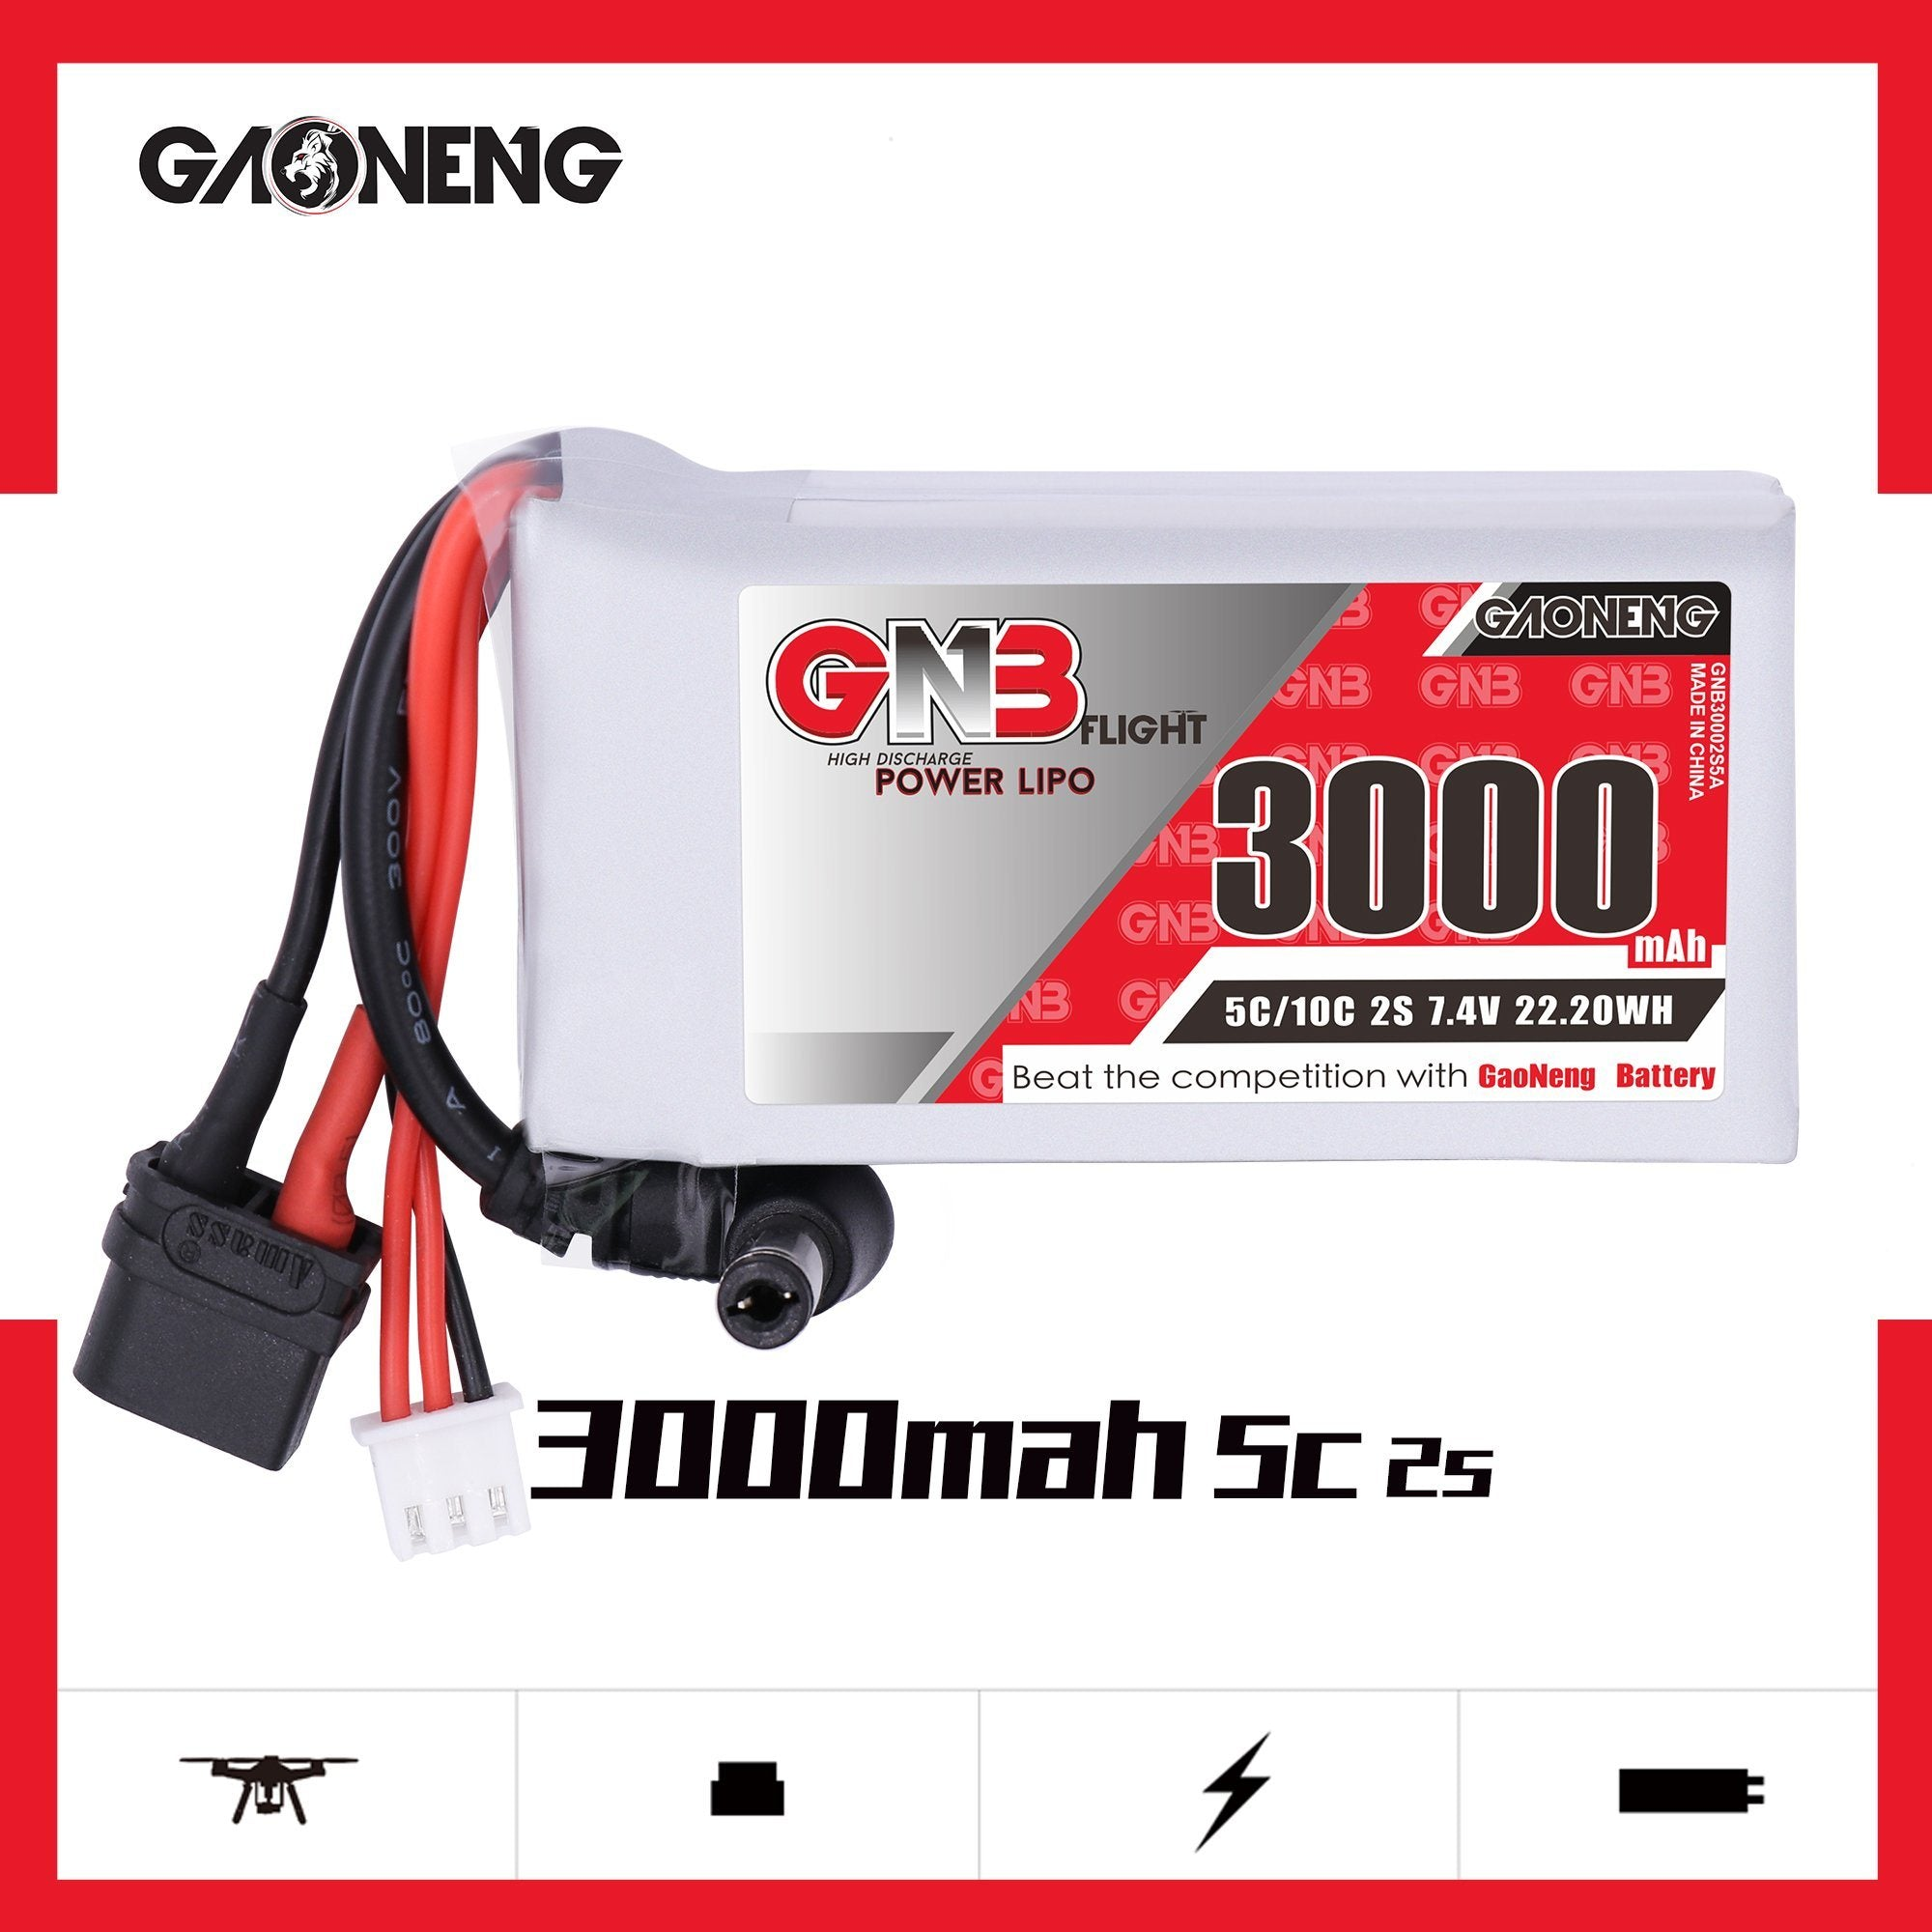 GNB 3000 mAh 2S 7.4V XT60 DC Connector for DJI Goggles GNB